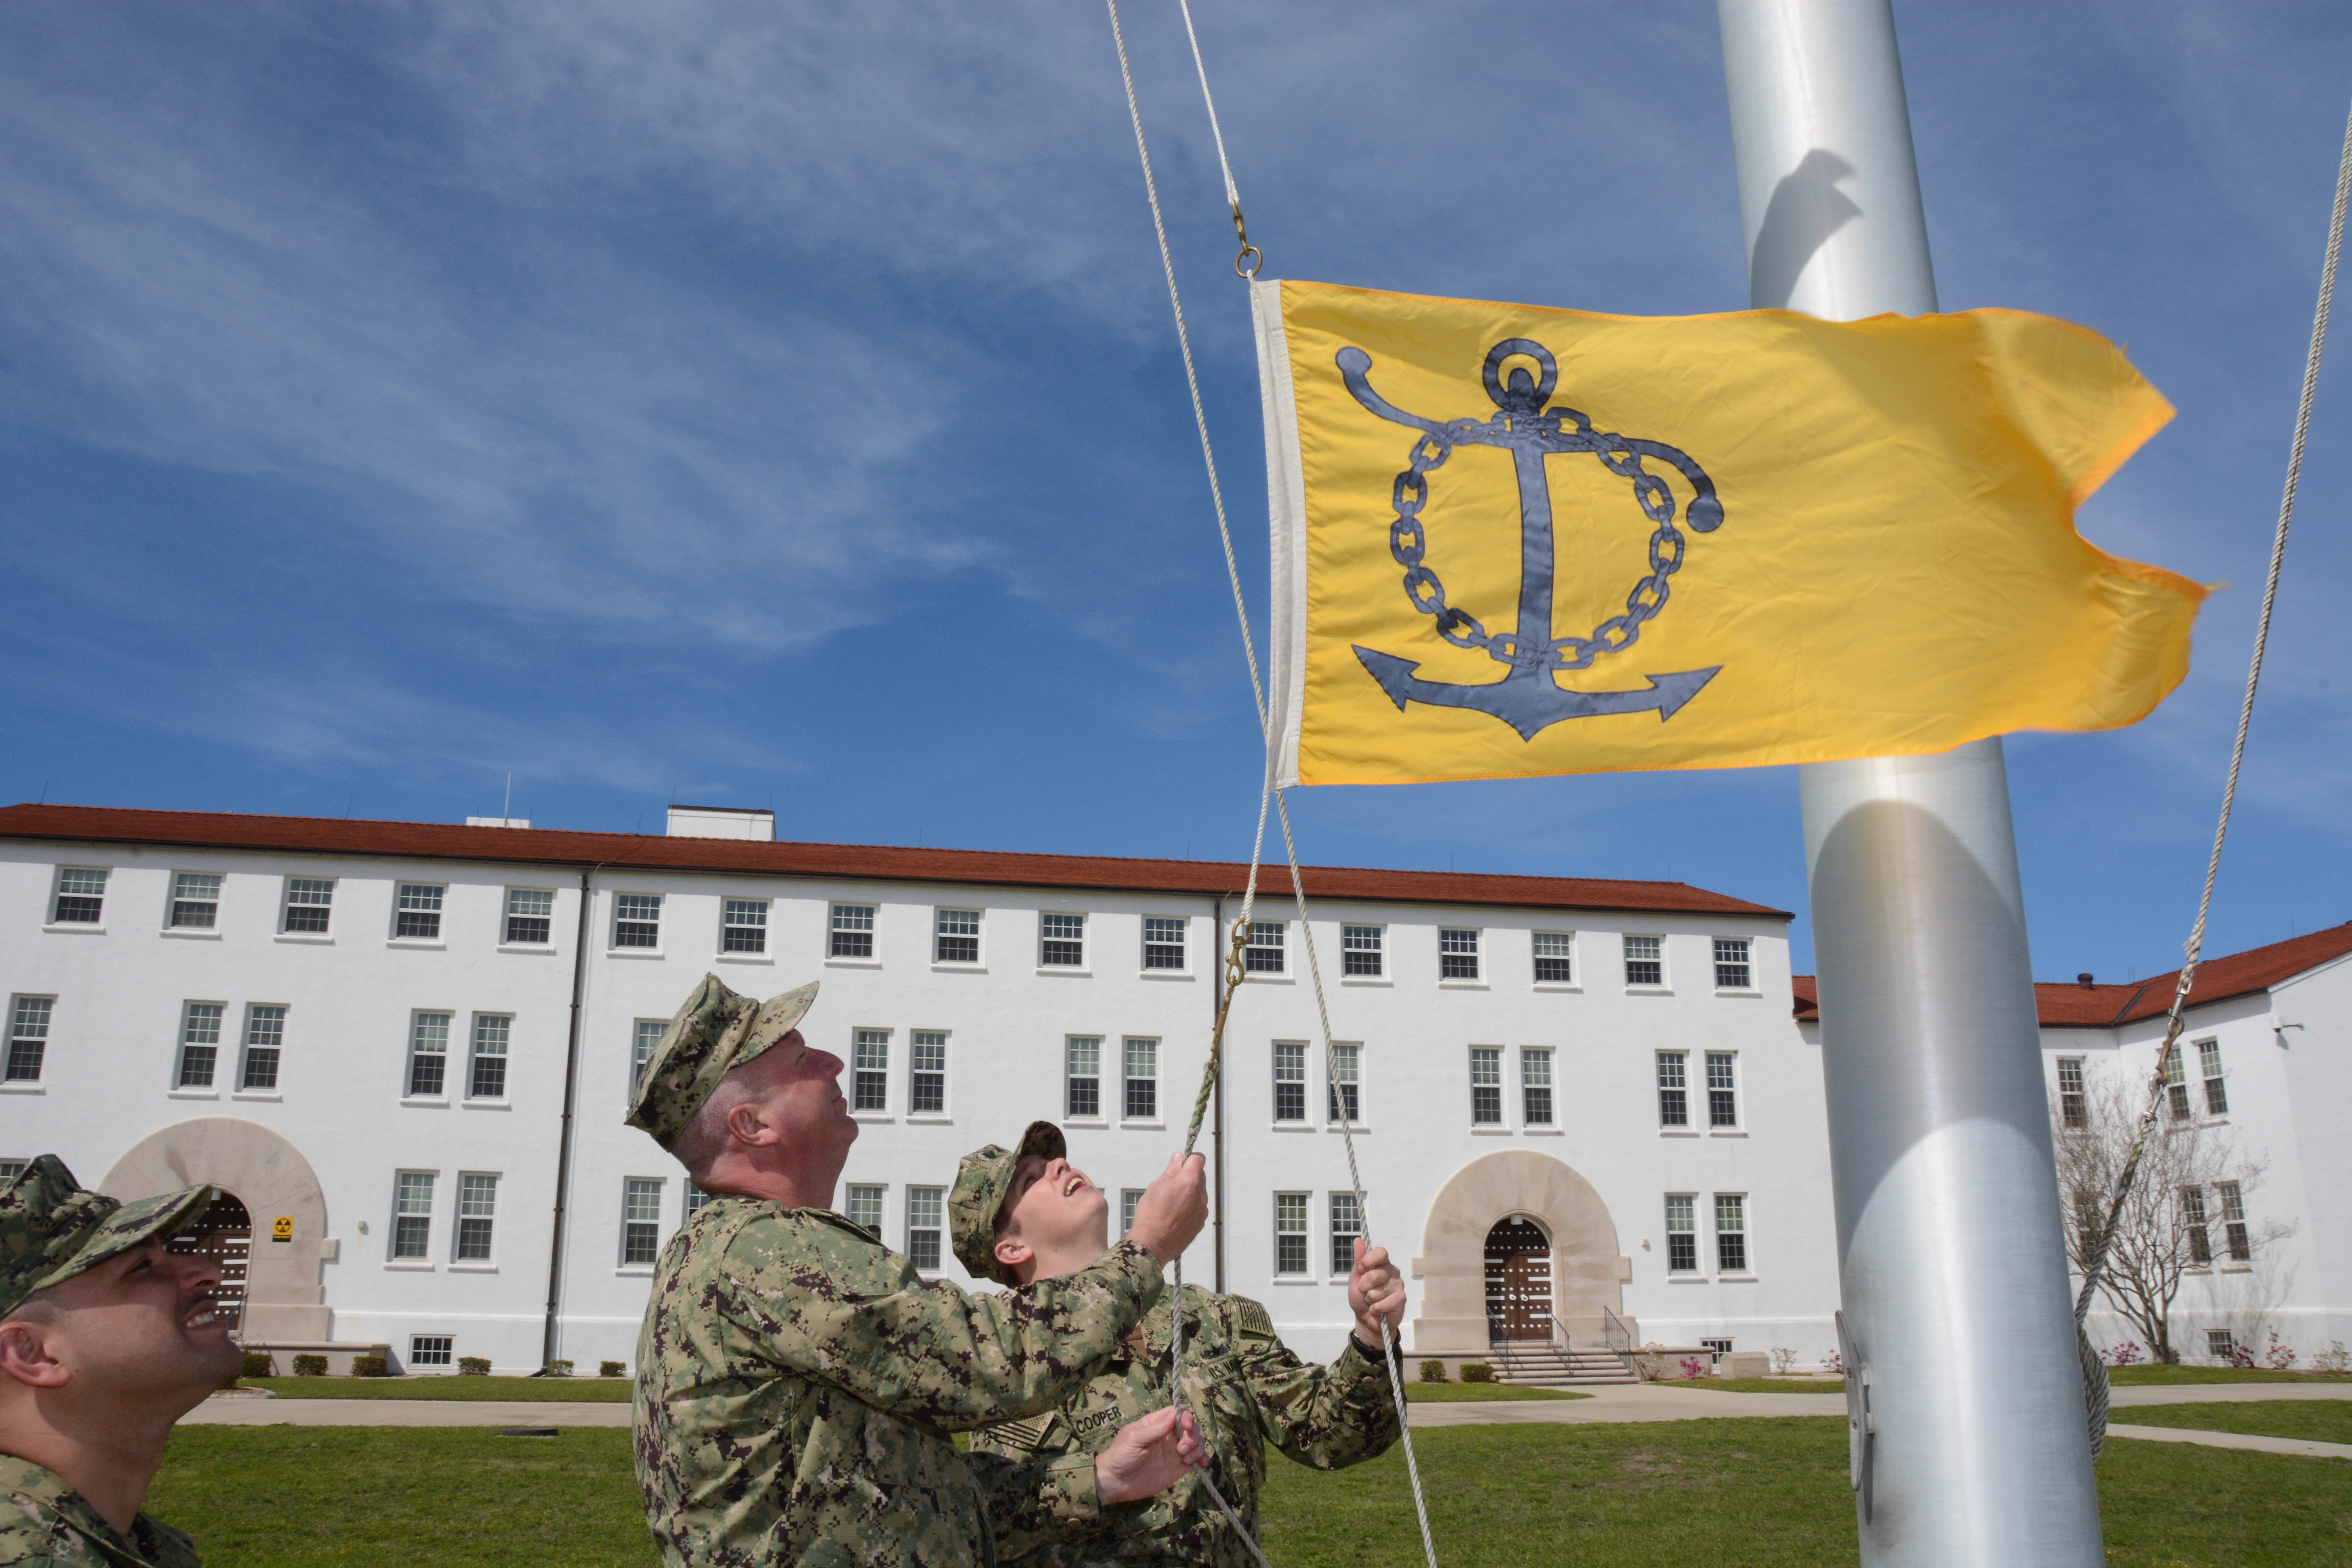 Caption: Sailors at Naval Air Station Pensacola, Fla. raise a flag to recognize the station's success at retaining personnel. The Navy recognizes units that do a good job keeping sailors in the service., Credit: Greg Mitchell / U.S. Navy